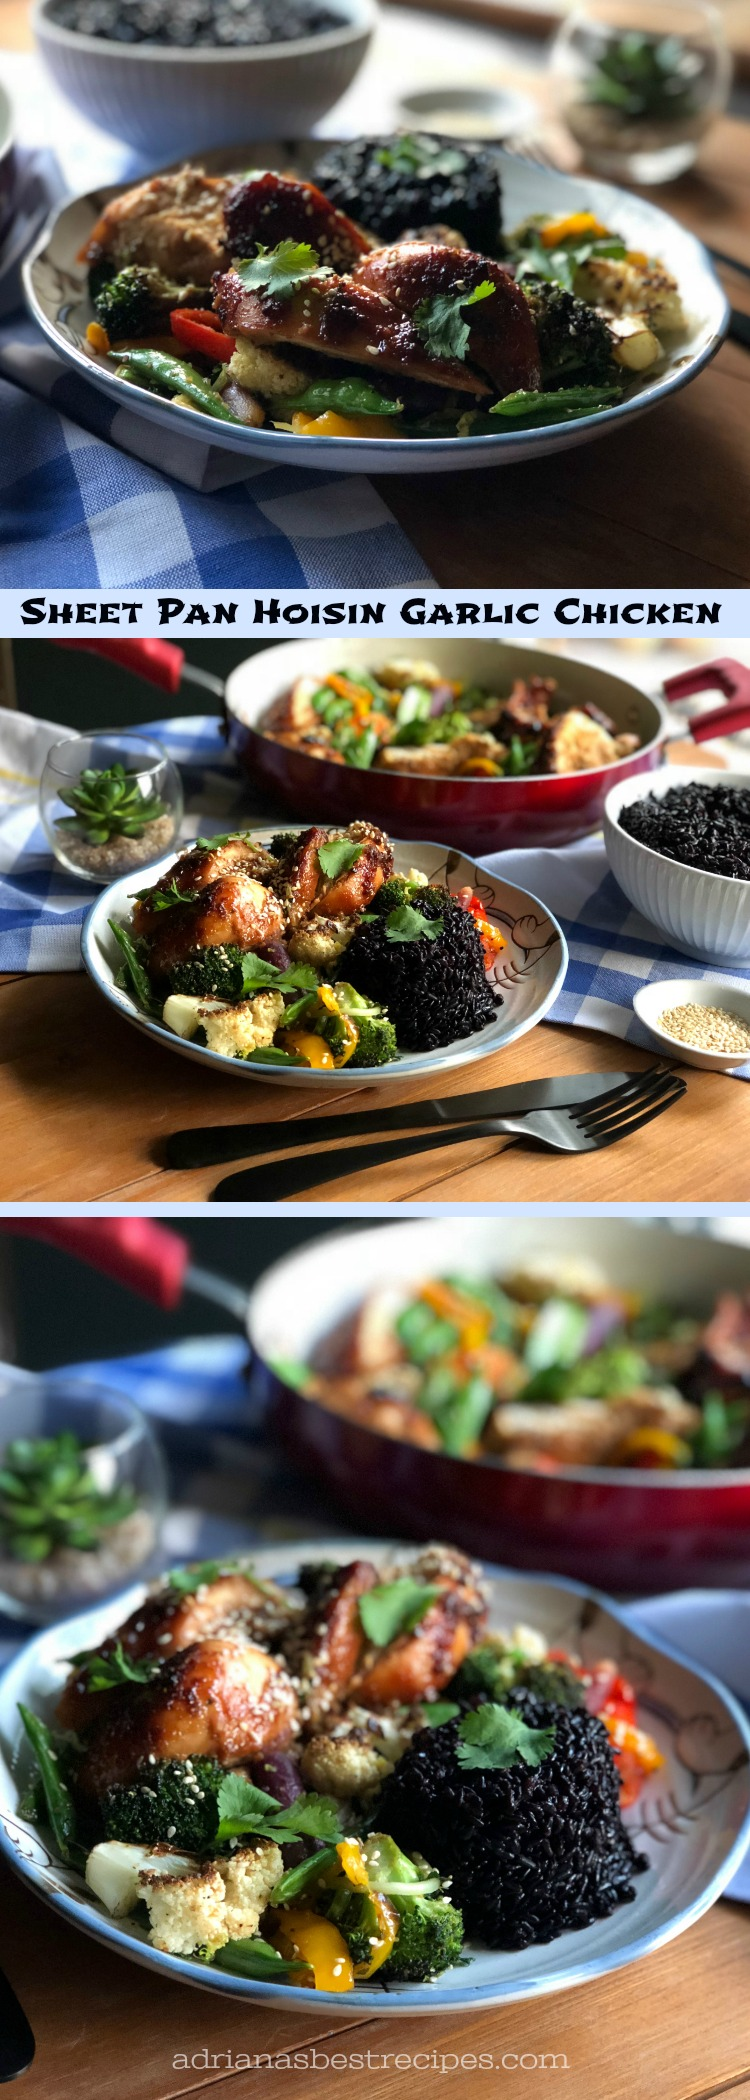 A sheet pan hoisin garlic chicken and veggies is my suggestion for celebrating this year's Chinese New Year